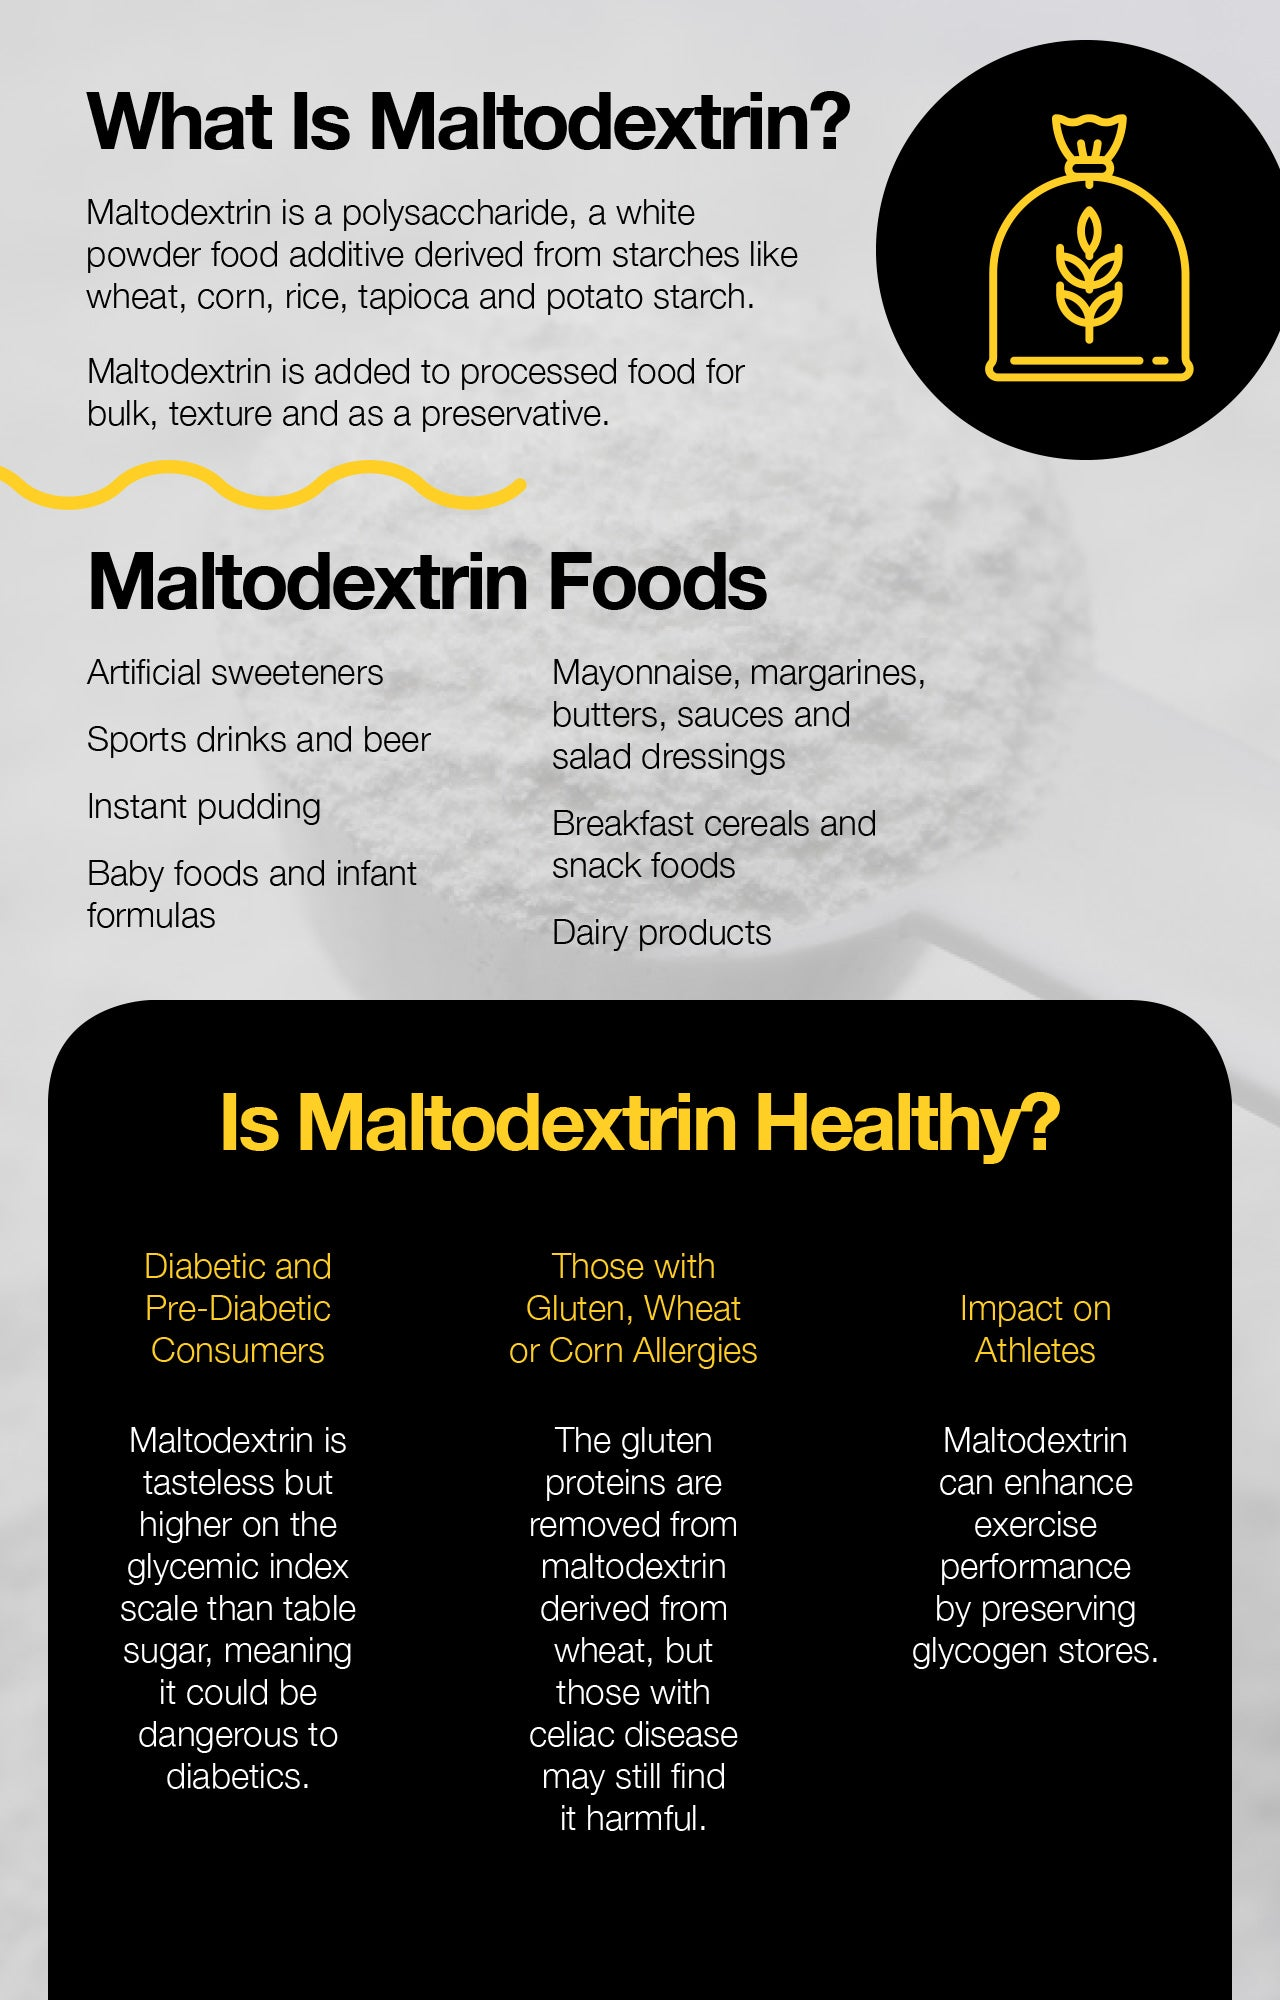 What Is Maltodextrin?